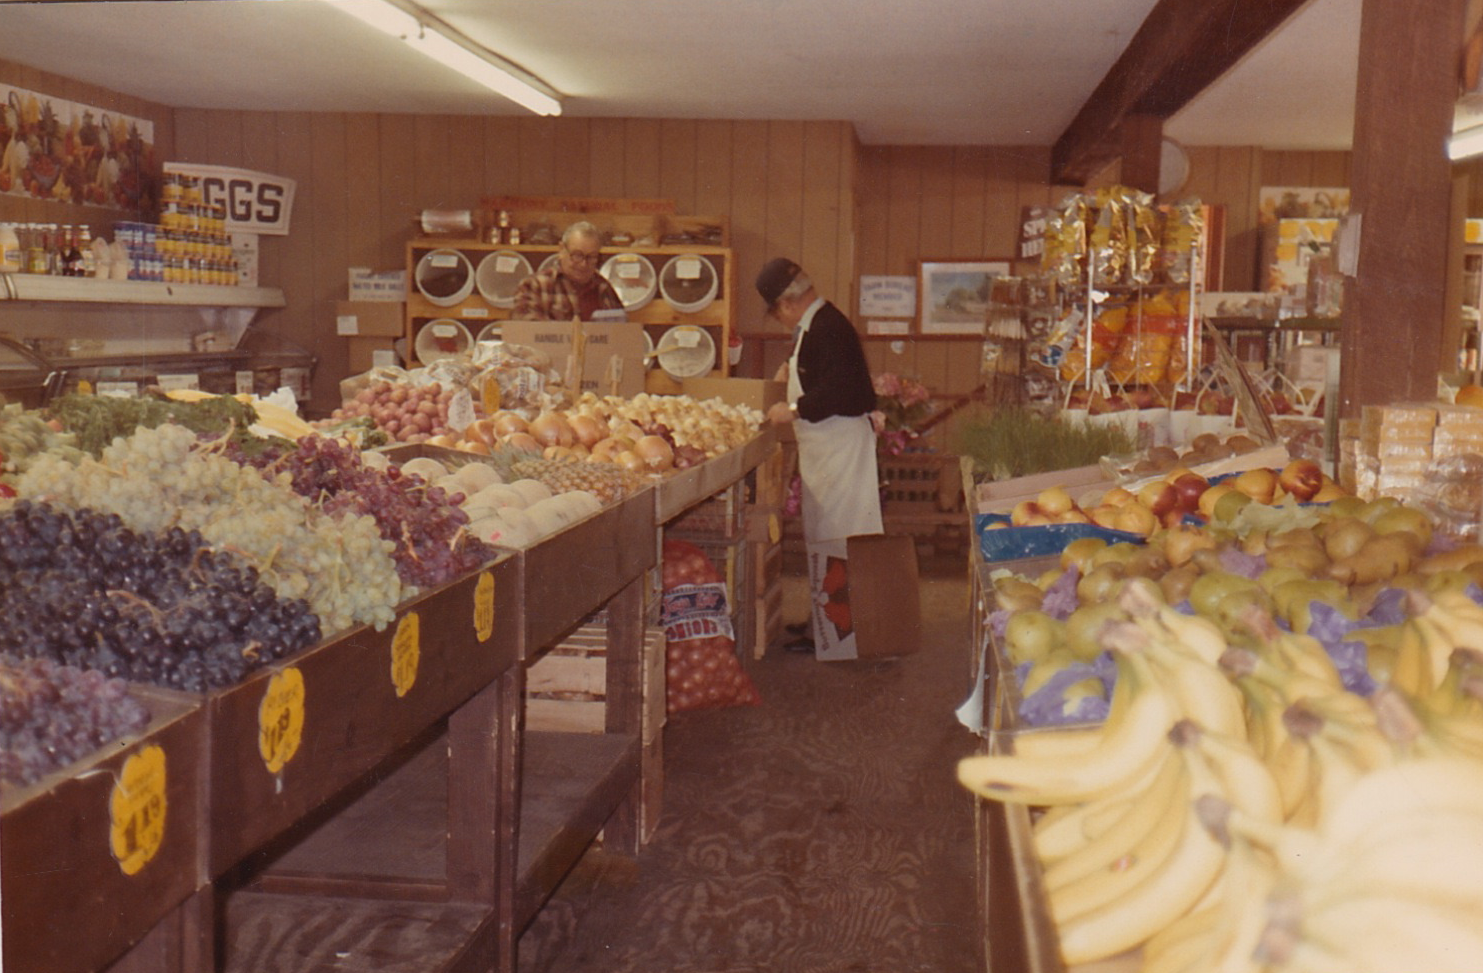 A classic produce shot from the 1980's. Some things never change.